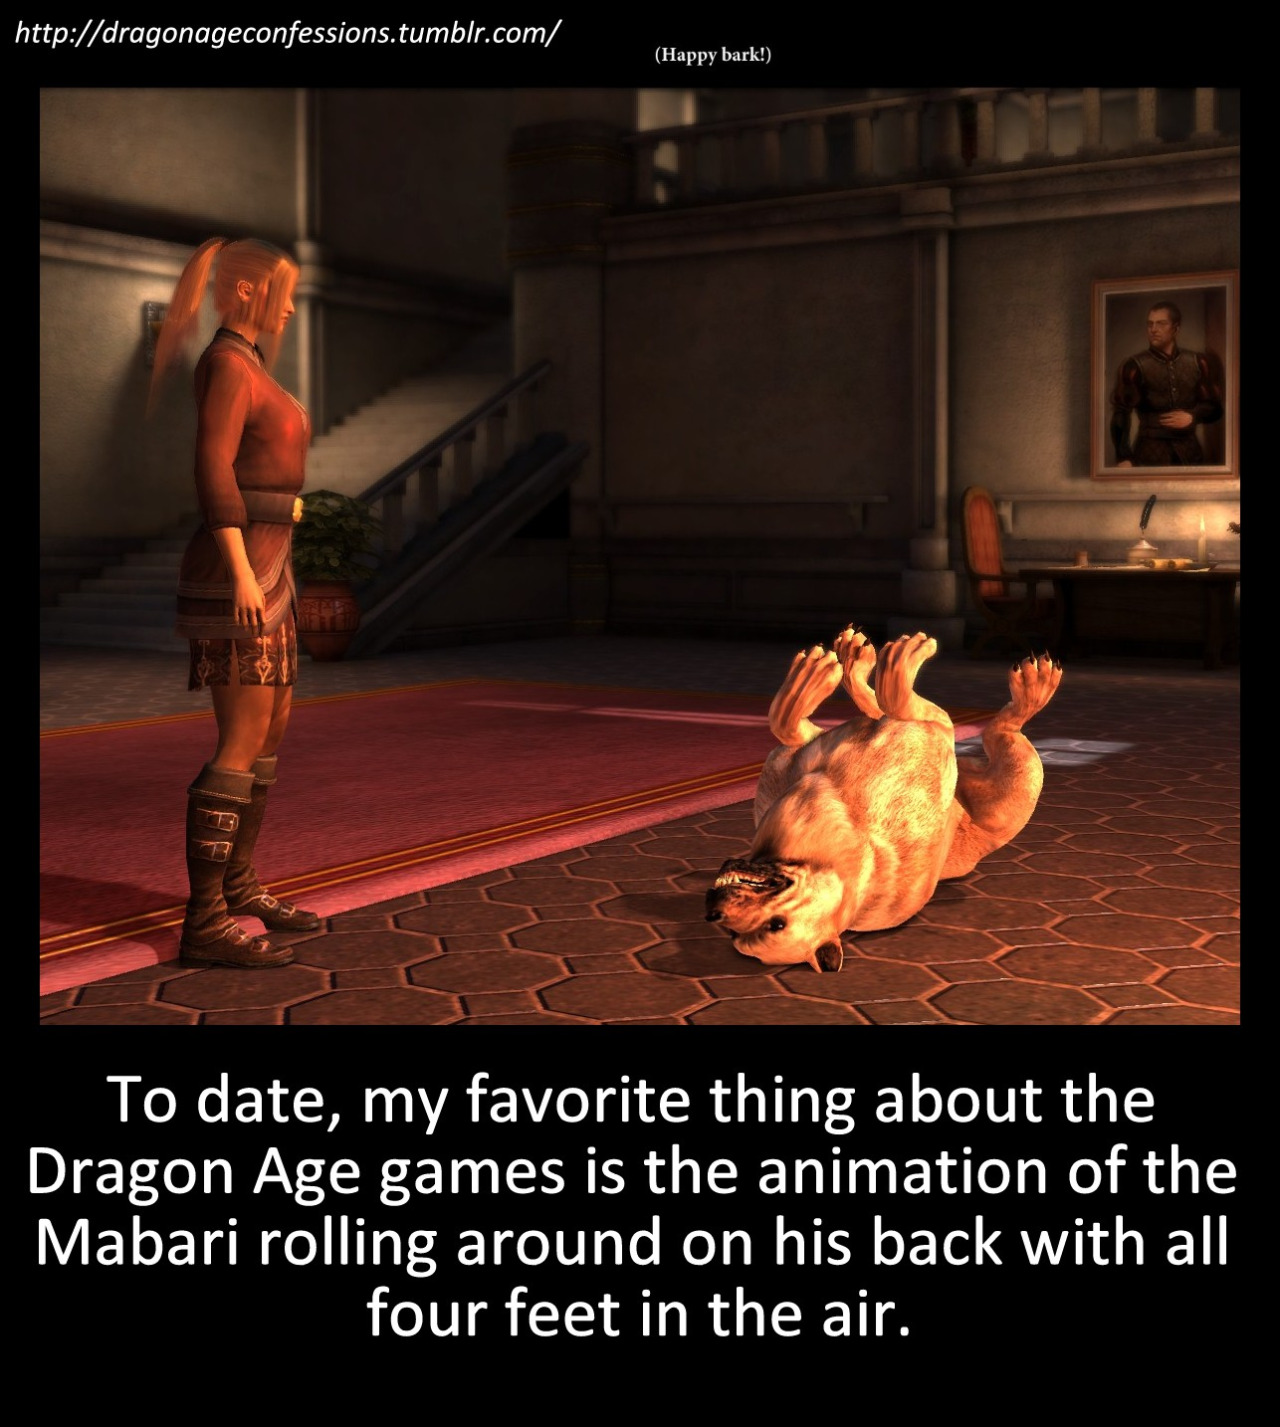 dragonageconfessions: Confession: To date, my favorite thing about the Dragon Age games is the animation of the Mabari rolling around on his back with all four feet in the air. That won't work on me. I'm a cat person.